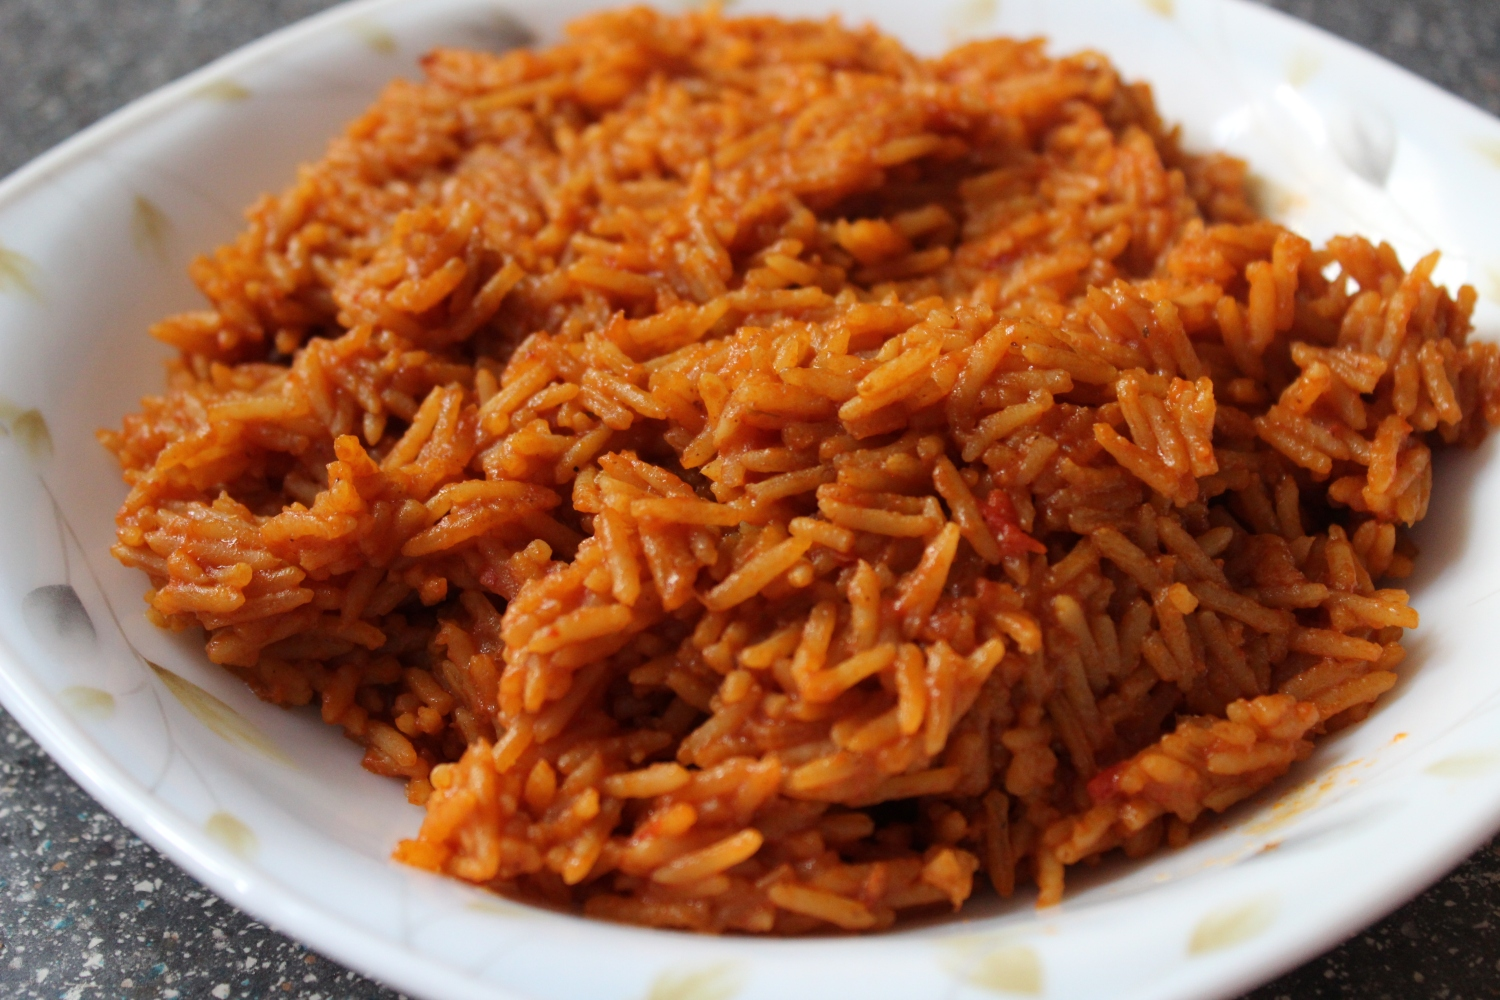 How to make jollof rice, How to make jollof rice, African Jollof Rice recipe, Nigerian Jollof Rice, Jollof Rice Recipe,